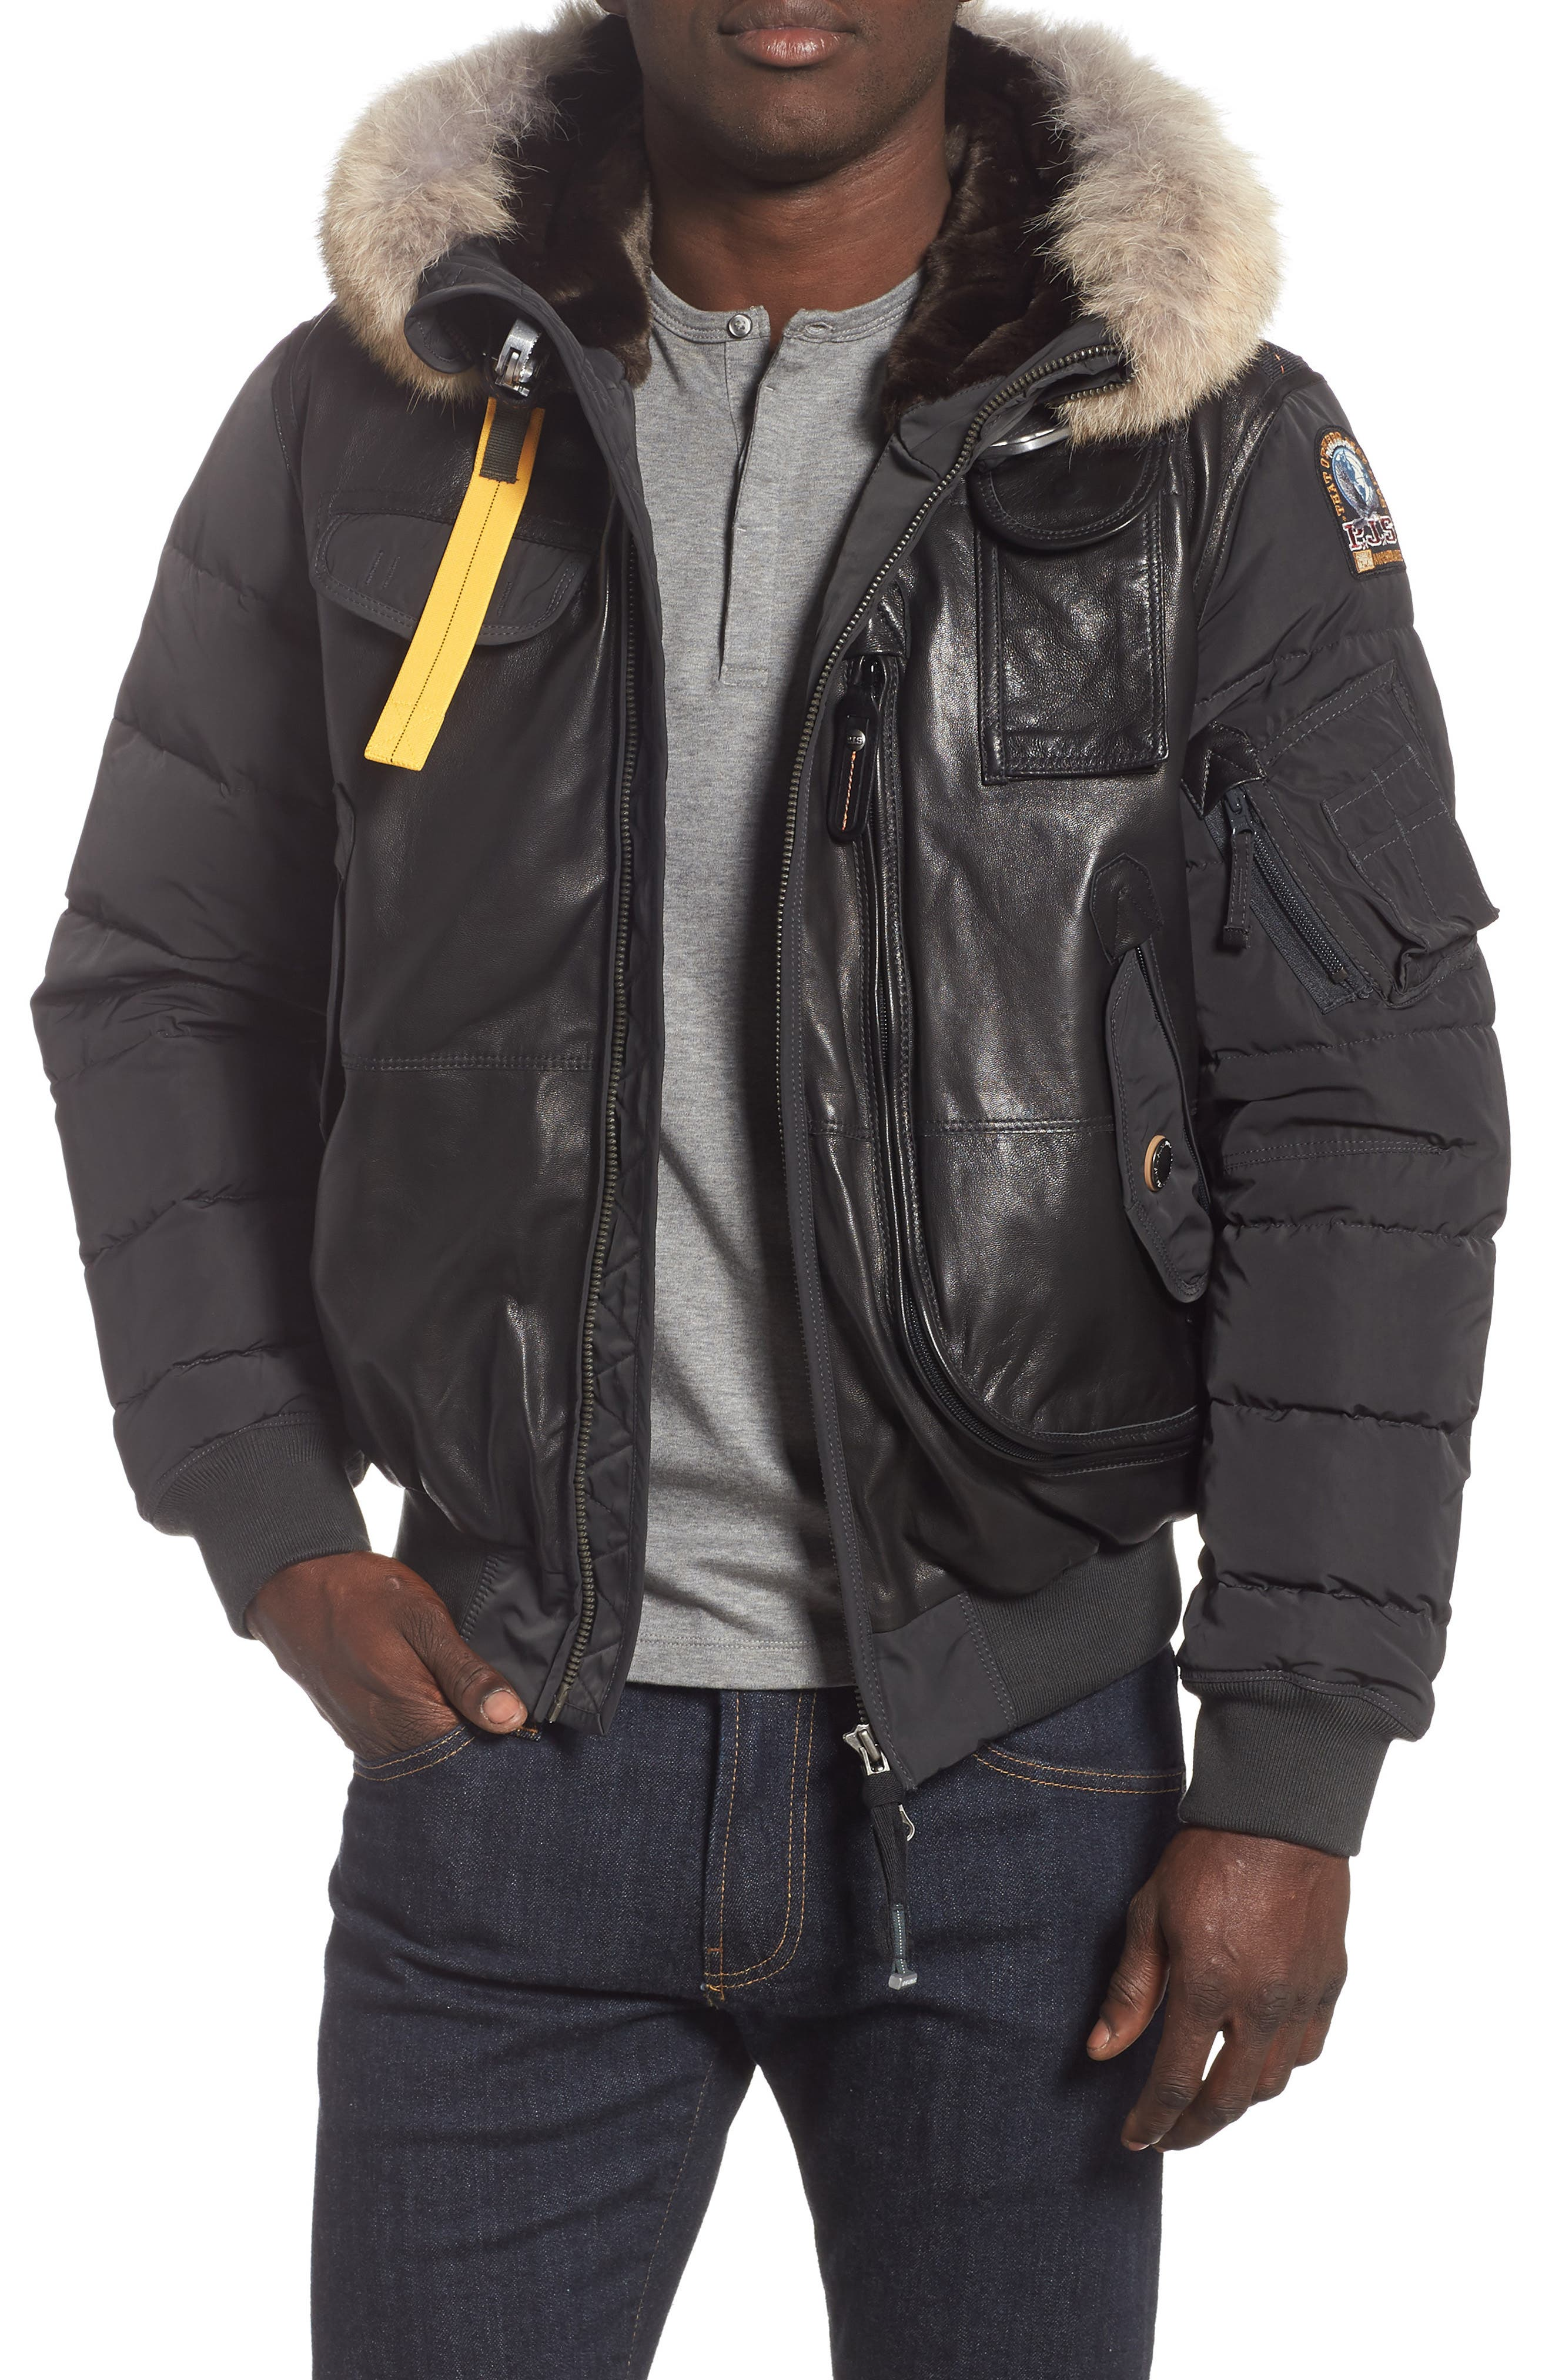 Grizzly Down Bomber Jacket with Genuine Coyote Fur Trim,                             Main thumbnail 1, color,                             ANTHRACITE